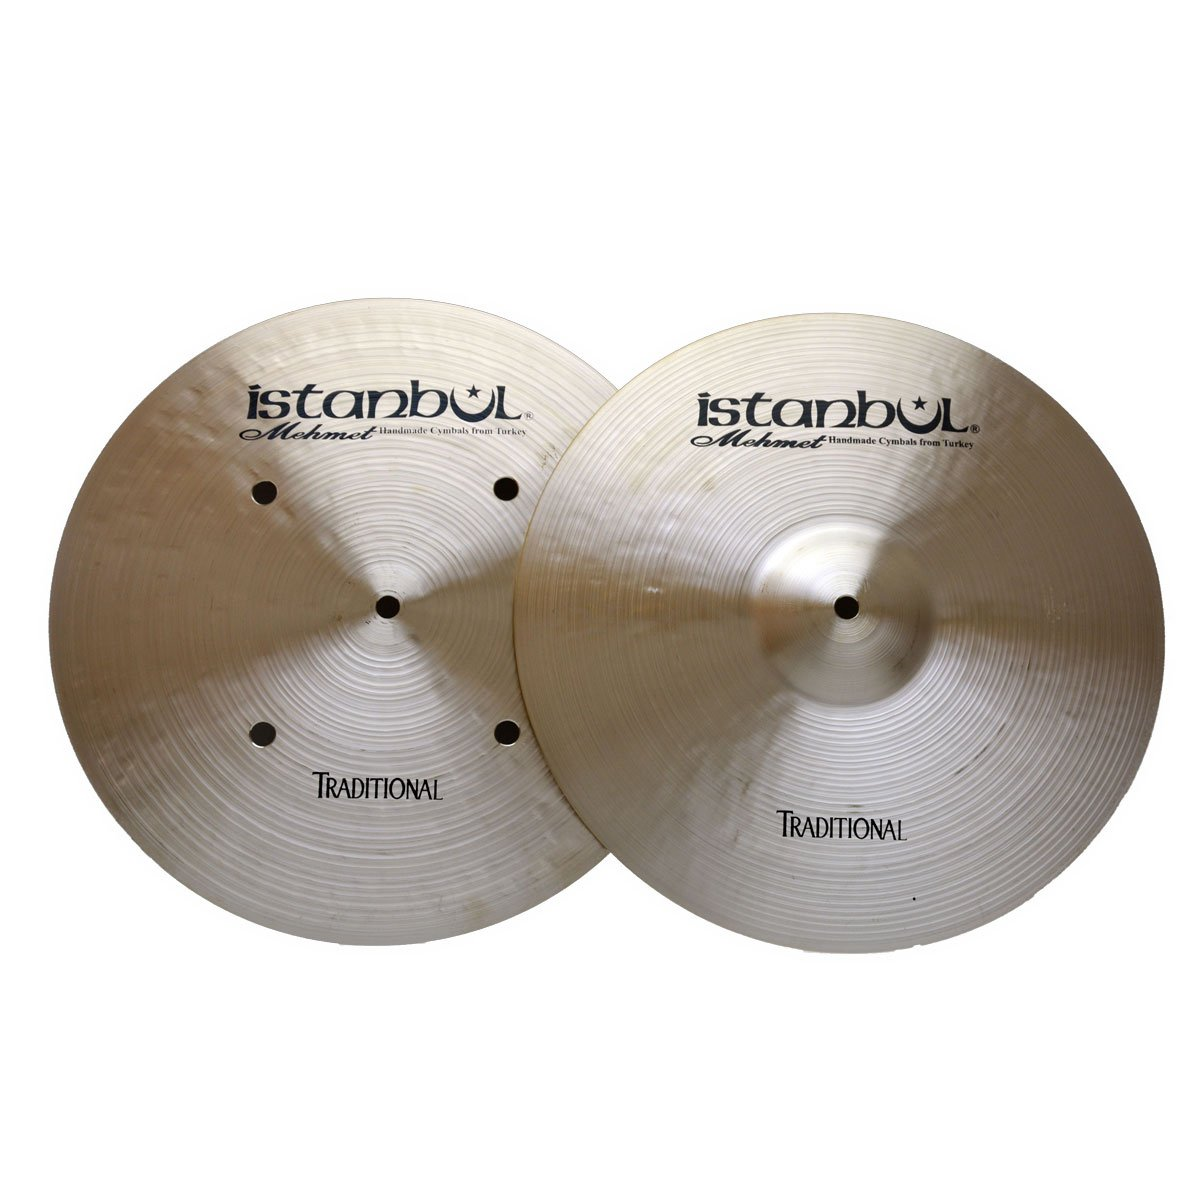 Istanbul Mehmet Cymbals Traditional Series Hi-Hat Flat Bottom Cymbals TOP&BOTTOM HHFH- (16